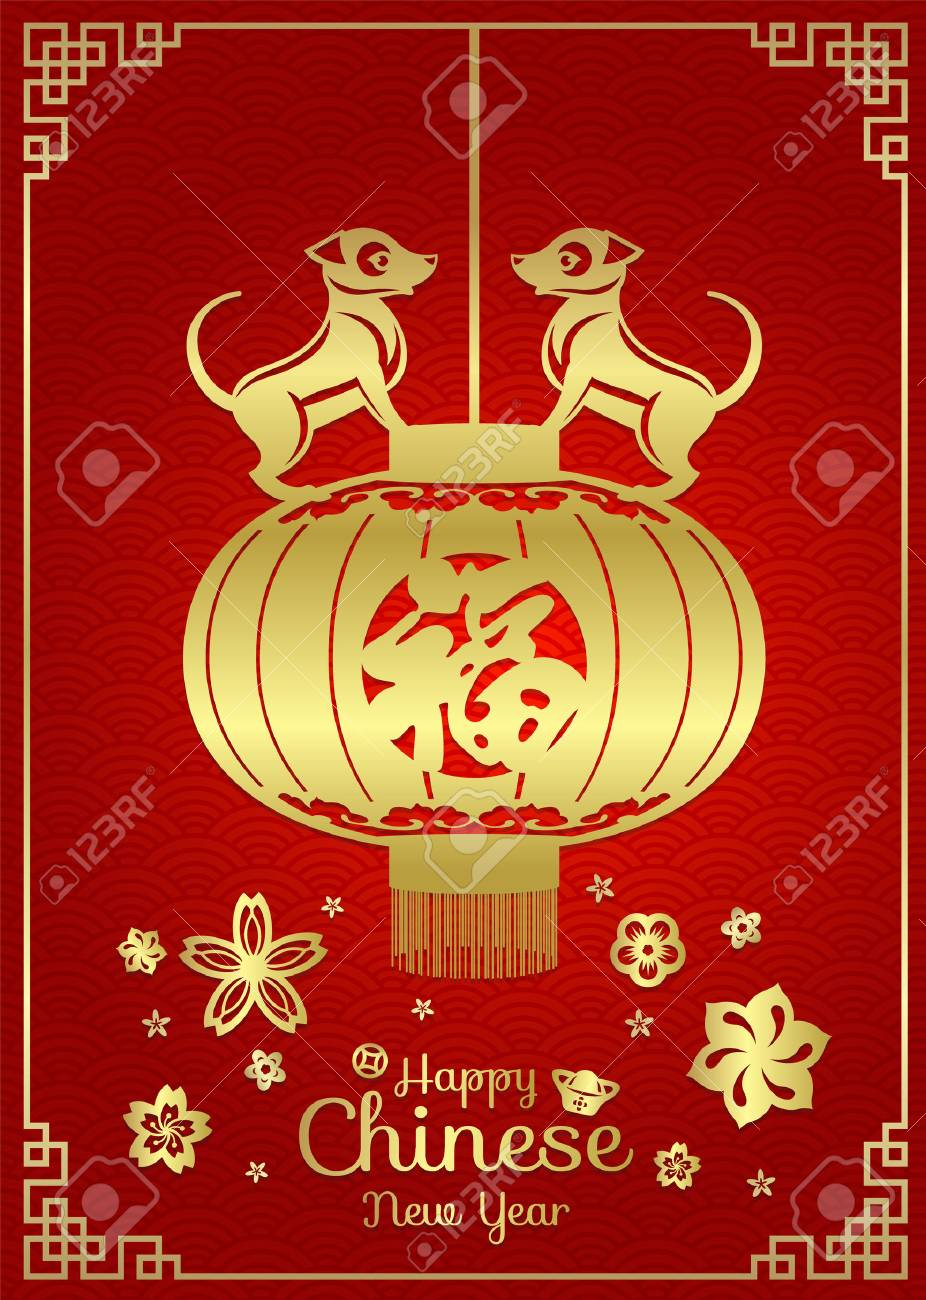 Happy chinese new year card 2018 with gold lanterns hang and happy chinese new year card 2018 with gold lanterns hang and twin dog chinese word kristyandbryce Choice Image